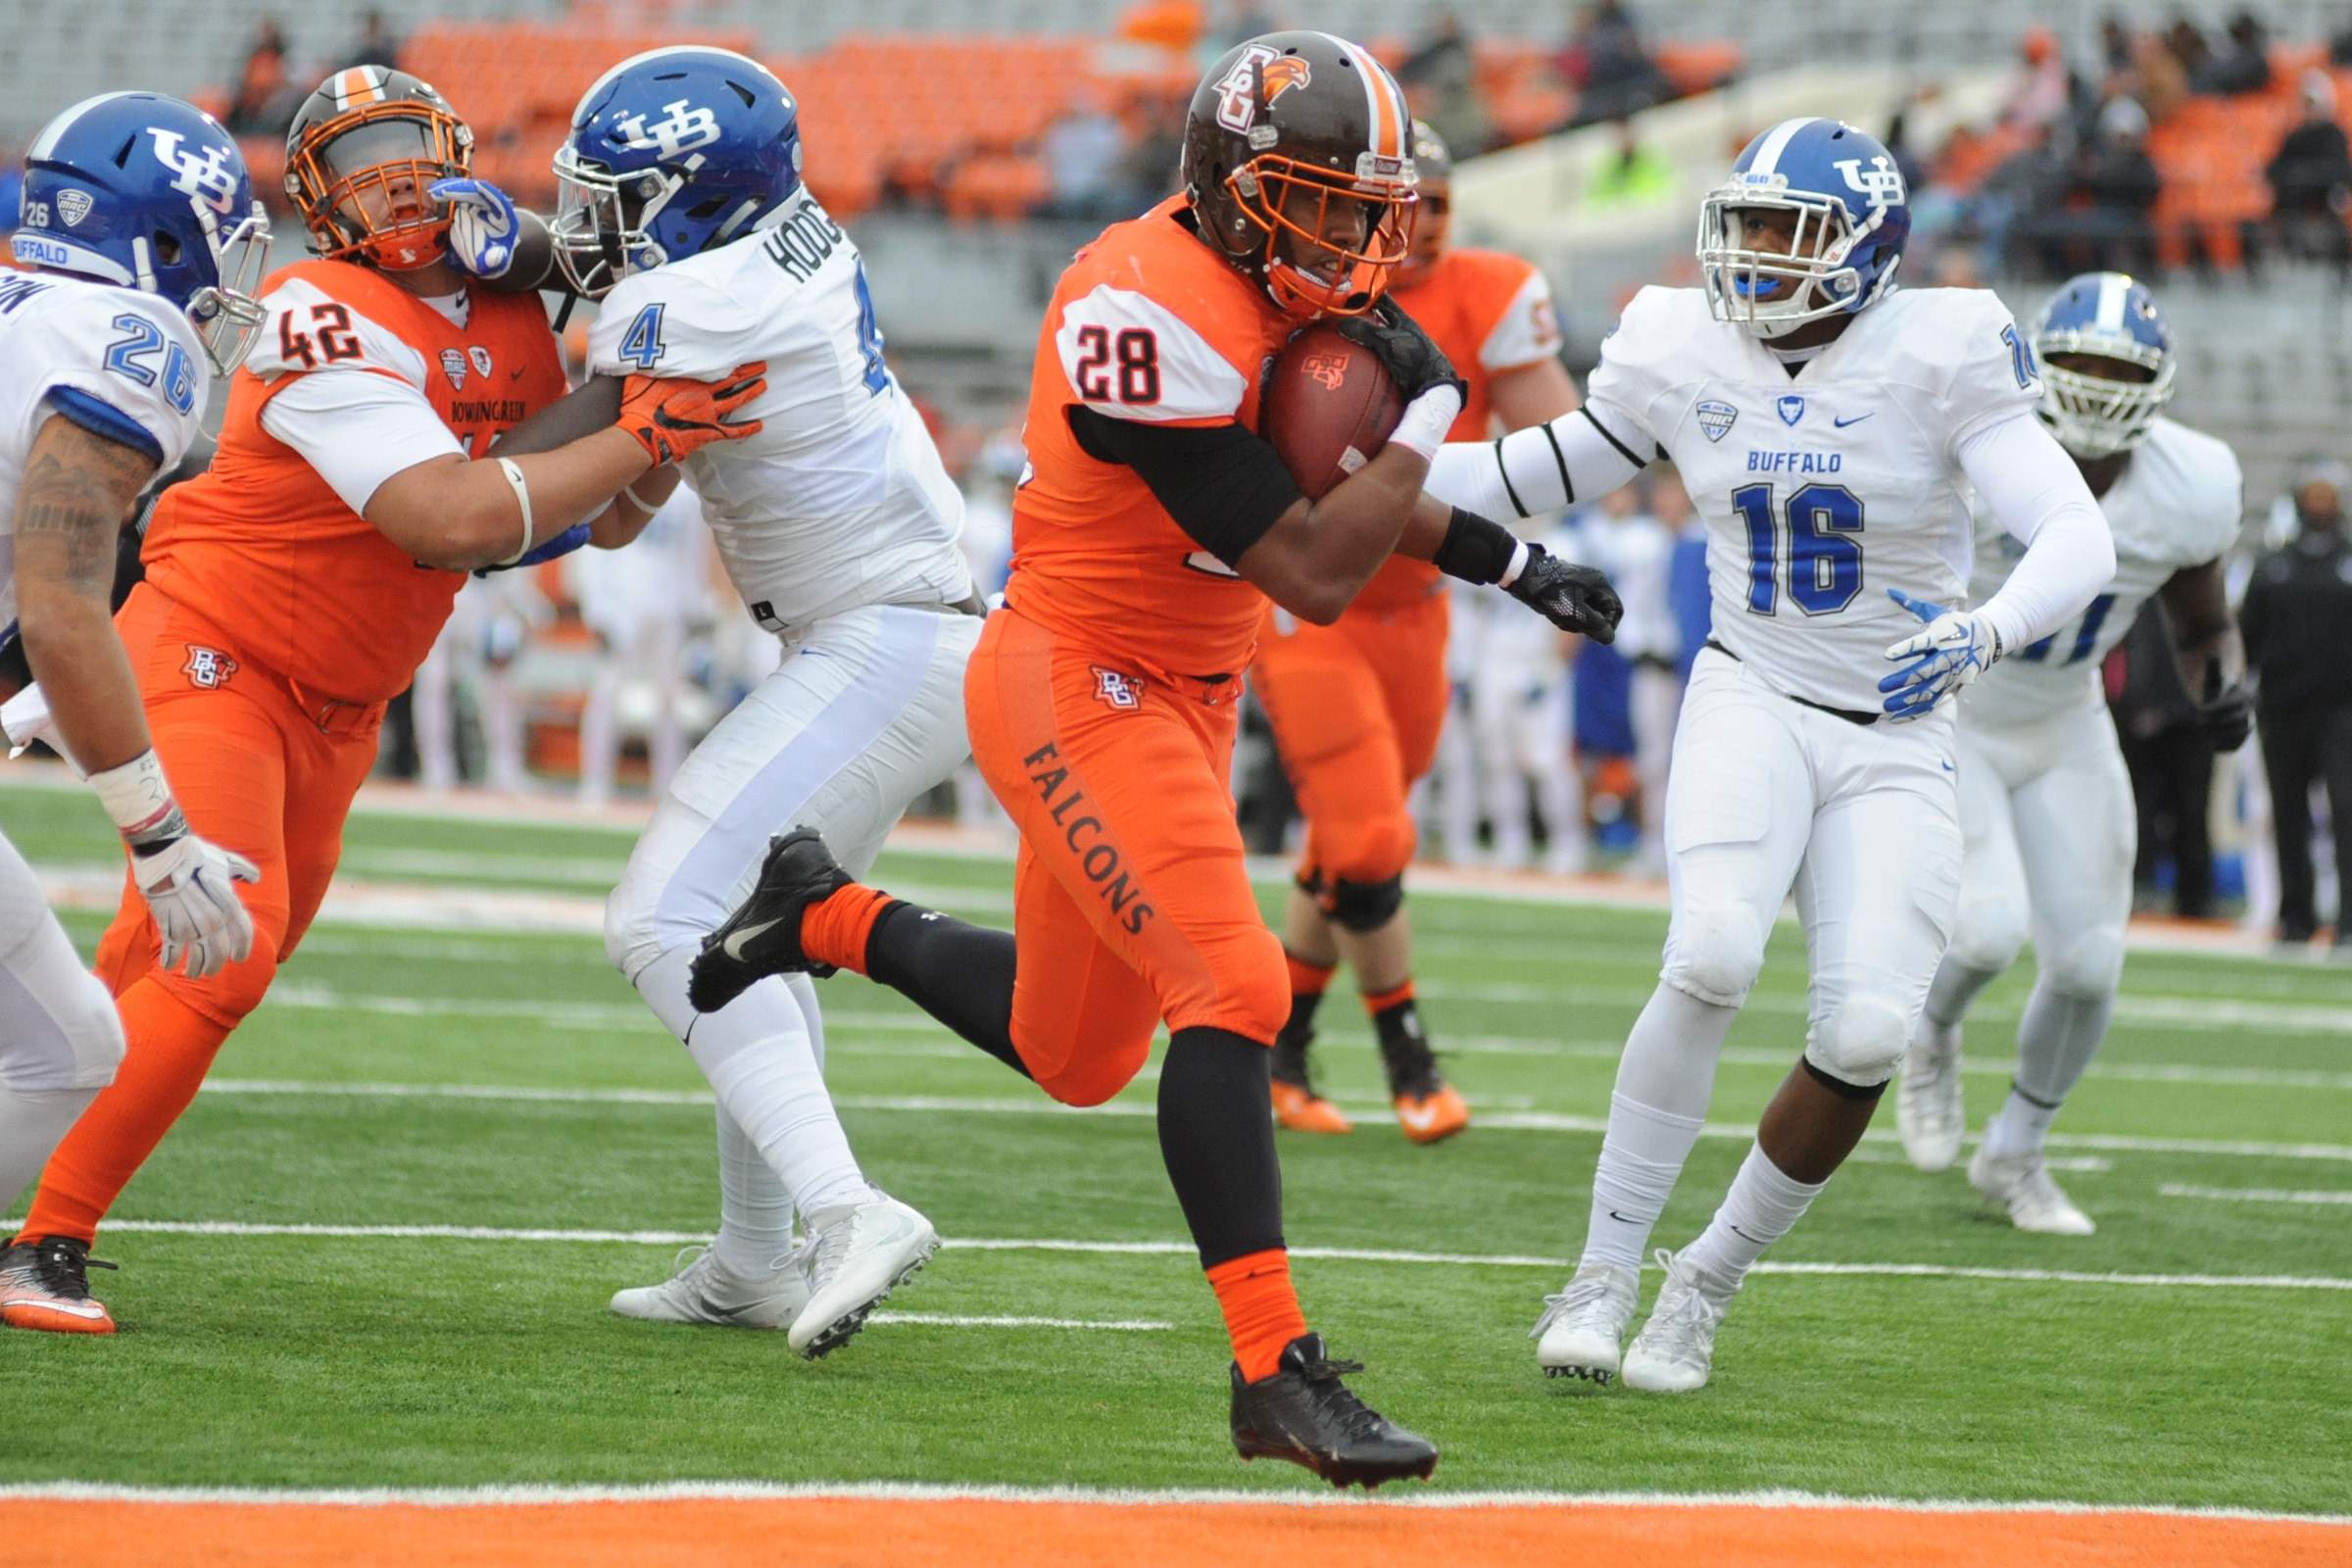 Bowling Green's Fred Coppet rushes for a touchdown against UB in the first quarter Friday. (Daniel Melograna/Bowling Sentinel-Tribune)